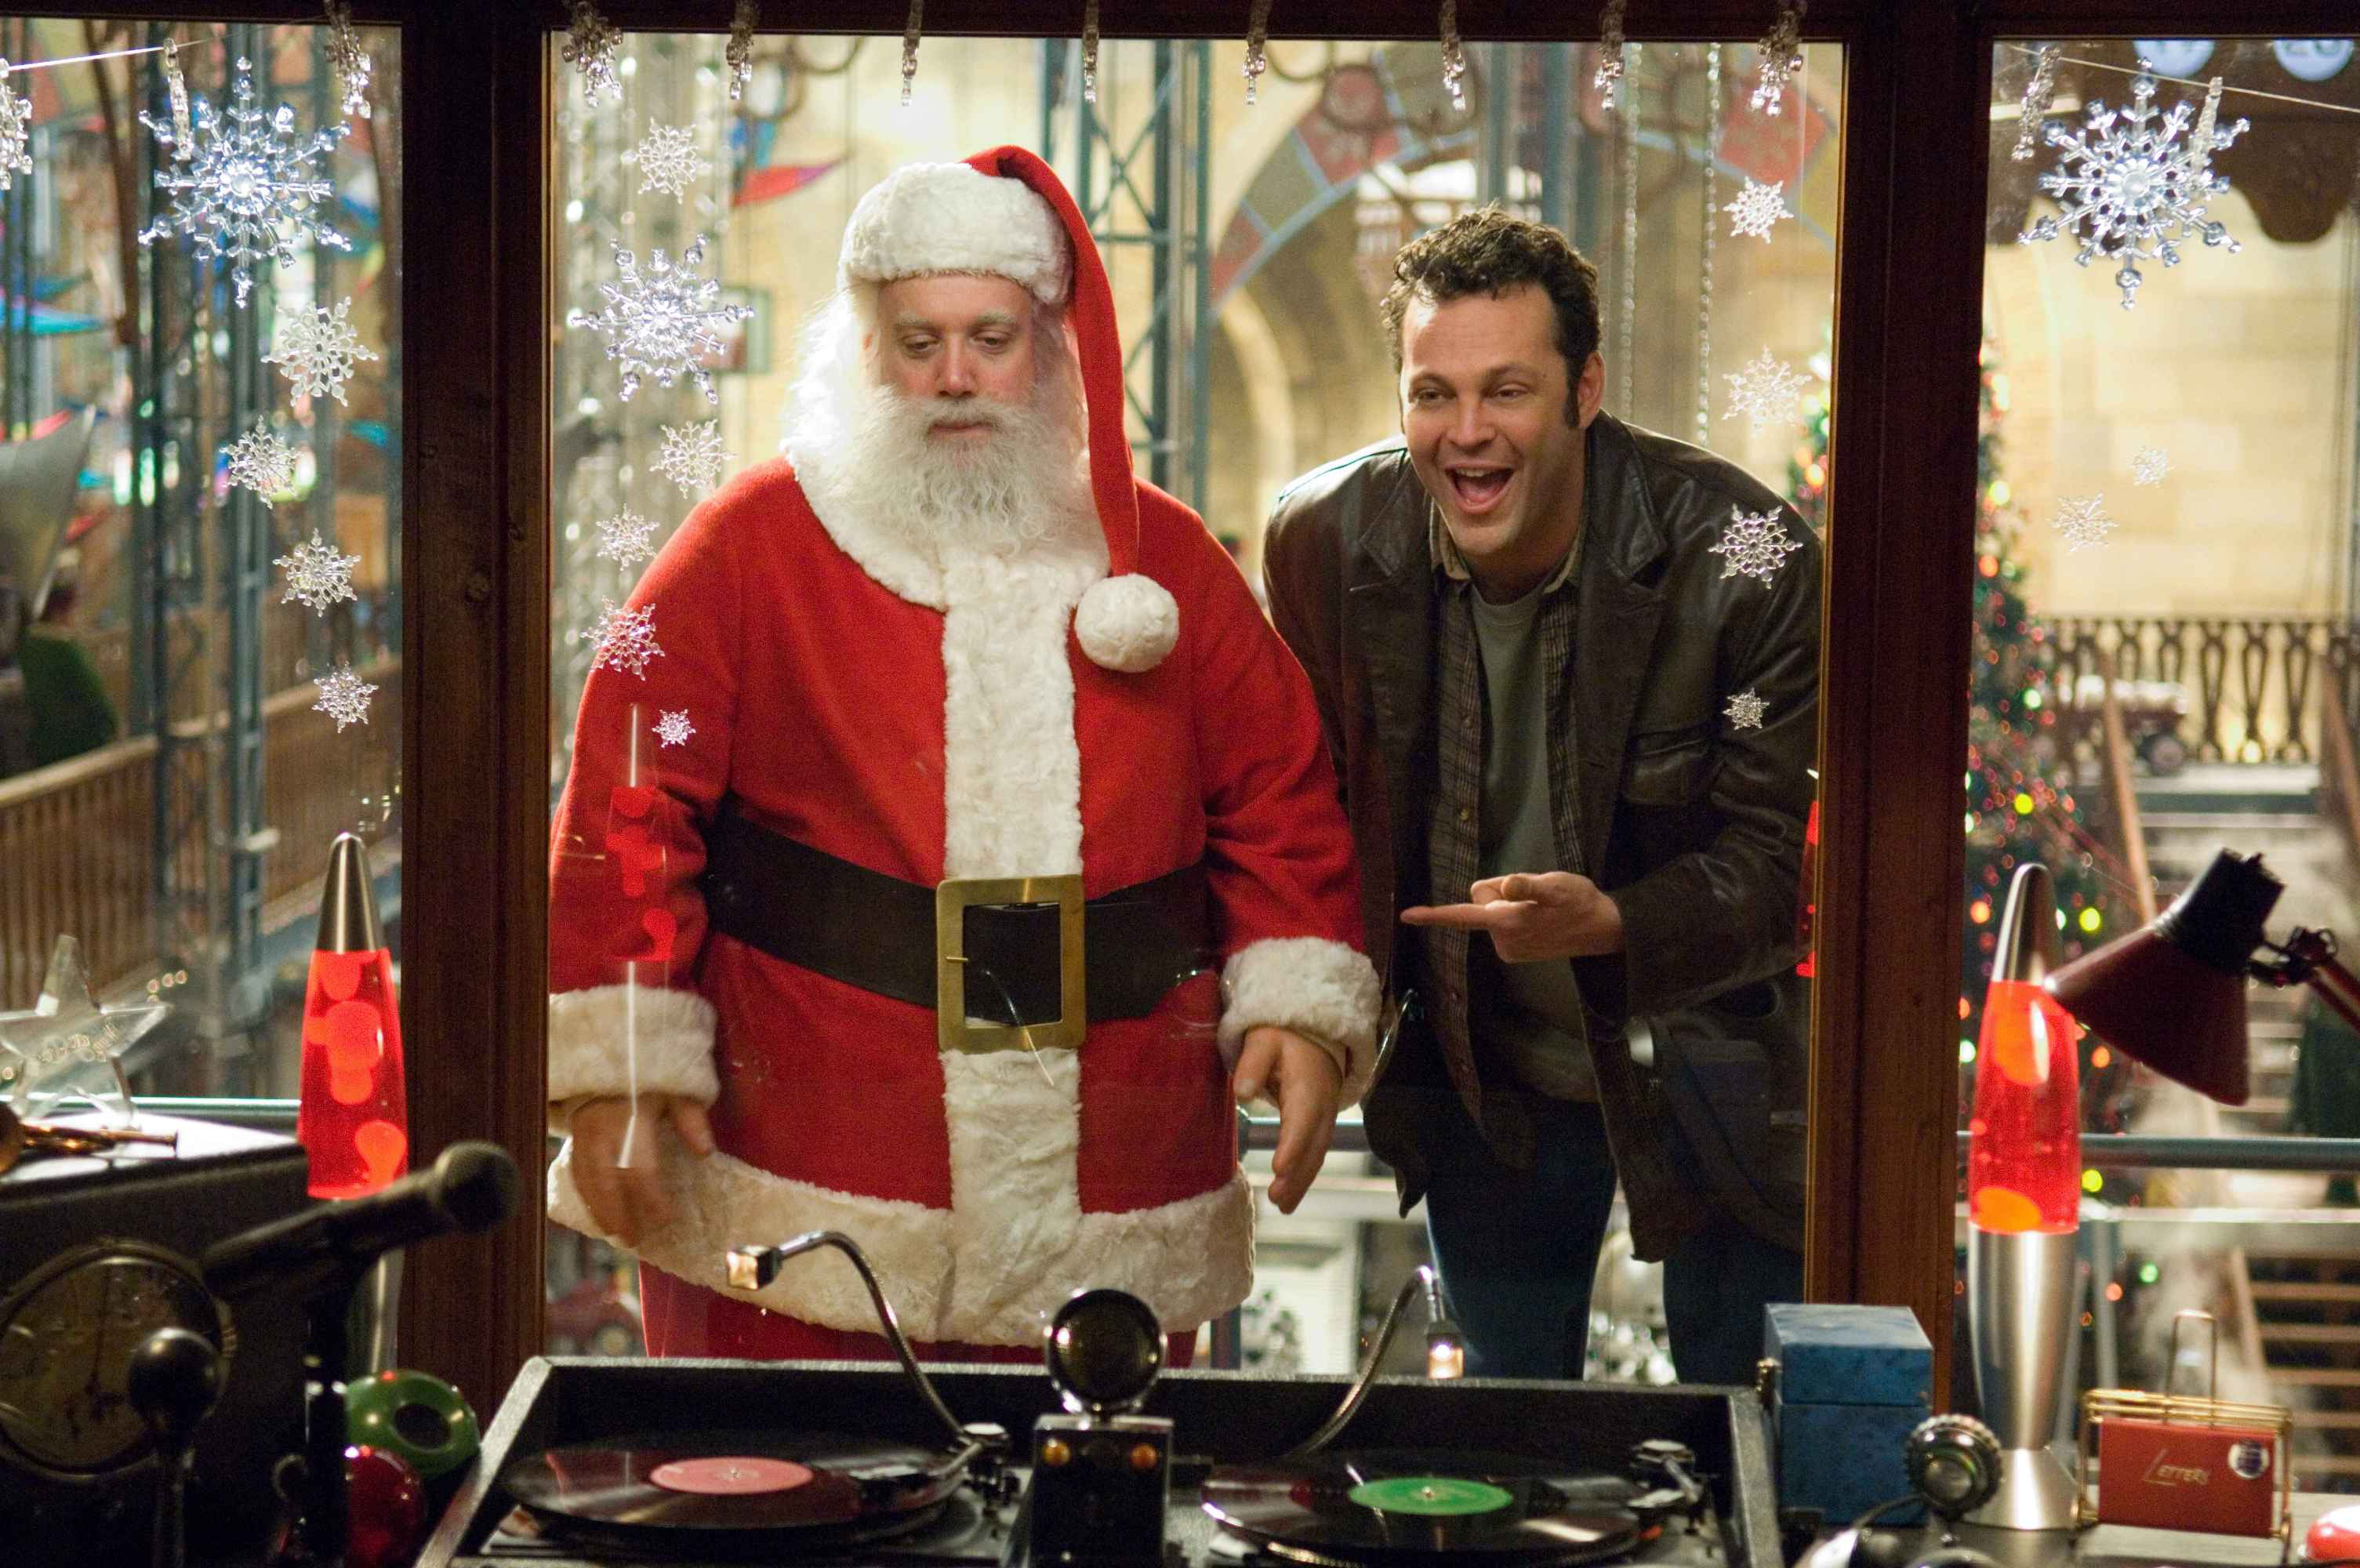 PAUL GIAMATTI stars as Nick ÒSantaÓ Claus and VINCE VAUGHN stars as Fred Claus in Warner Bros. PicturesÕ holiday comedy ÒFred Claus,Ó distributed by Warner Bros. Pictures. PHOTOGRAPHS TO BE USED SOLELY FOR ADVERTISING, PROMOTION, PUBLICITY OR REVIEWS OF THIS SPECIFIC MOTION PICTURE AND TO REMAIN THE PROPERTY OF THE STUDIO. NOT FOR SALE OR REDISTRIBUTION.